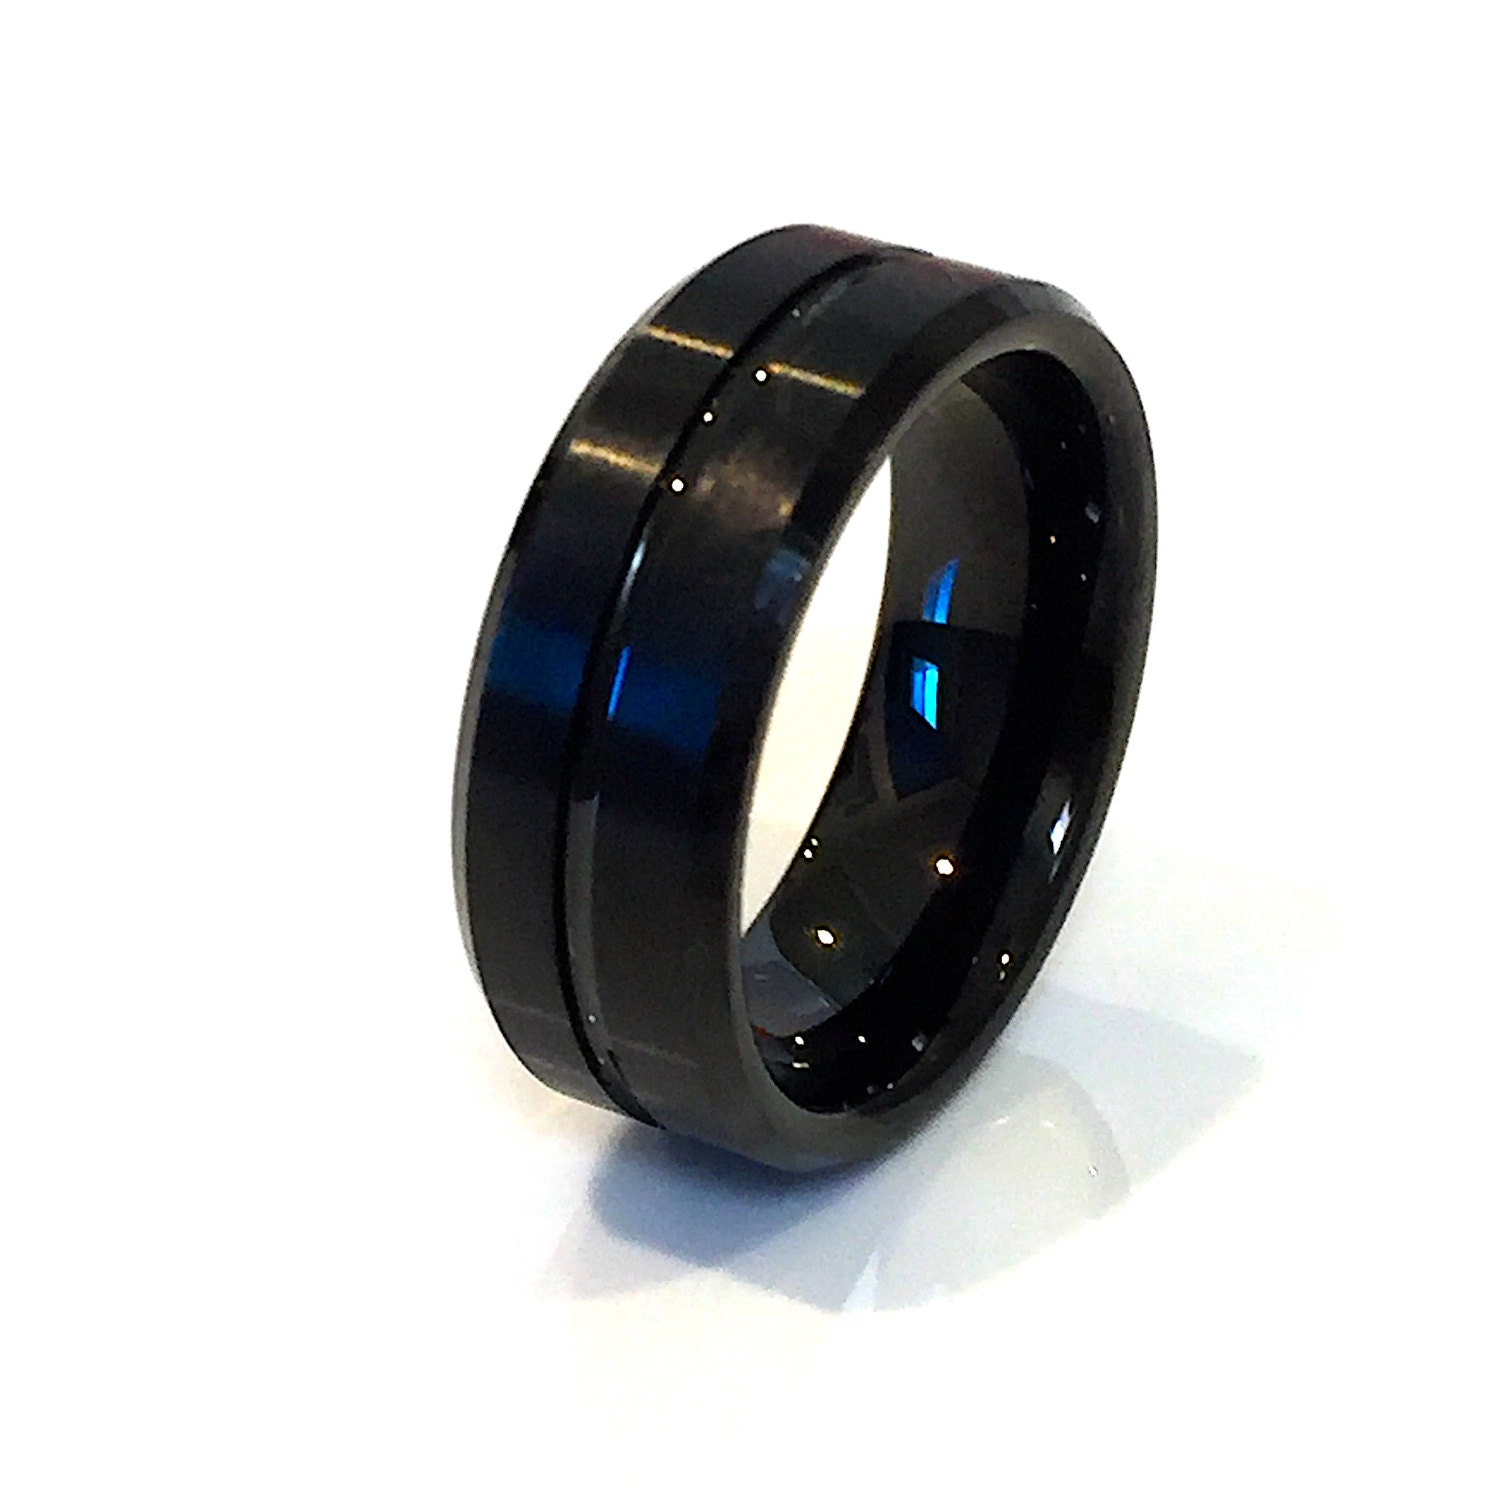 Tungsten band wedding band men39s tungsten ring by for Tungsten wedding ring reviews